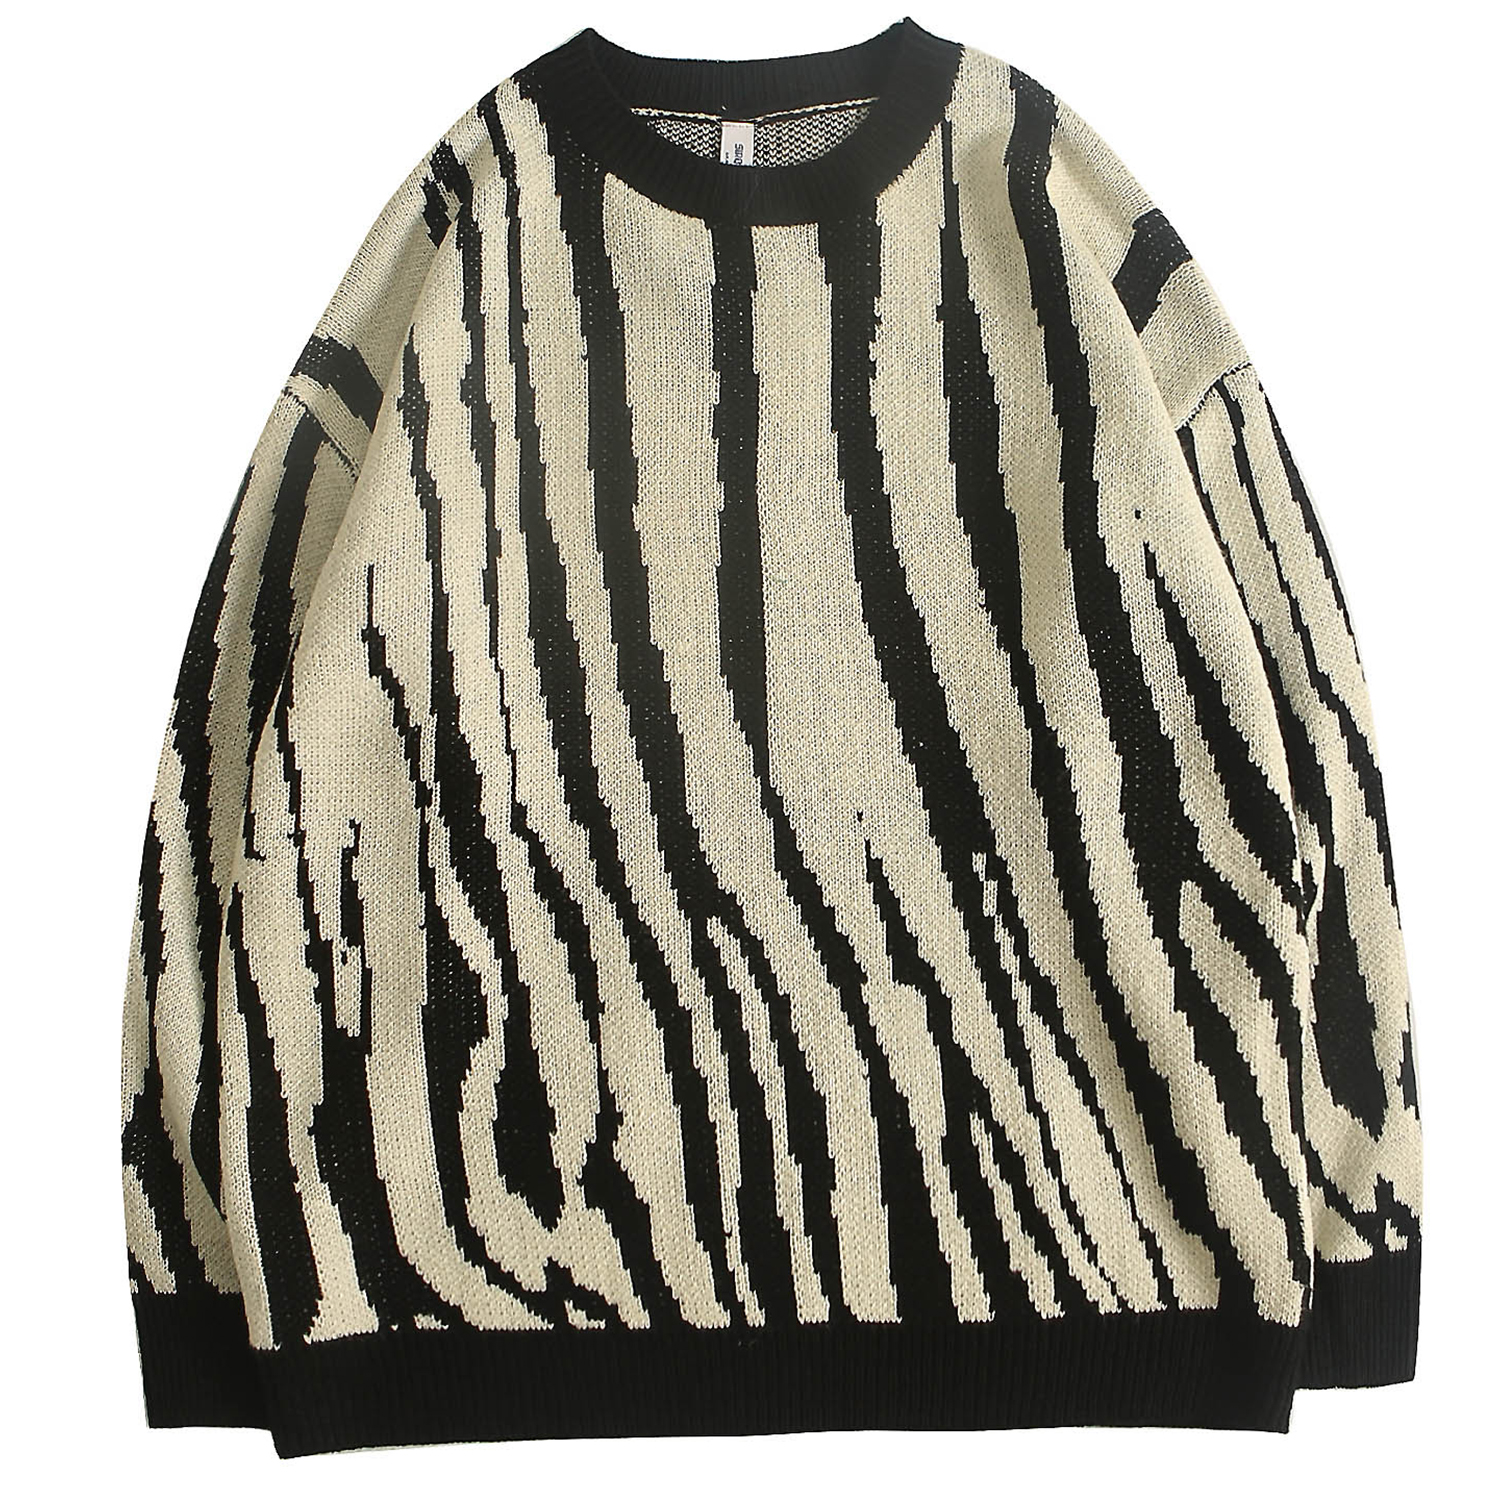 Men's Jumpers Fine Knitted Sweater Pullover Zebra Combination Crewneck Tops Retro For Young Boys Casual Outdoor Autumn Winter